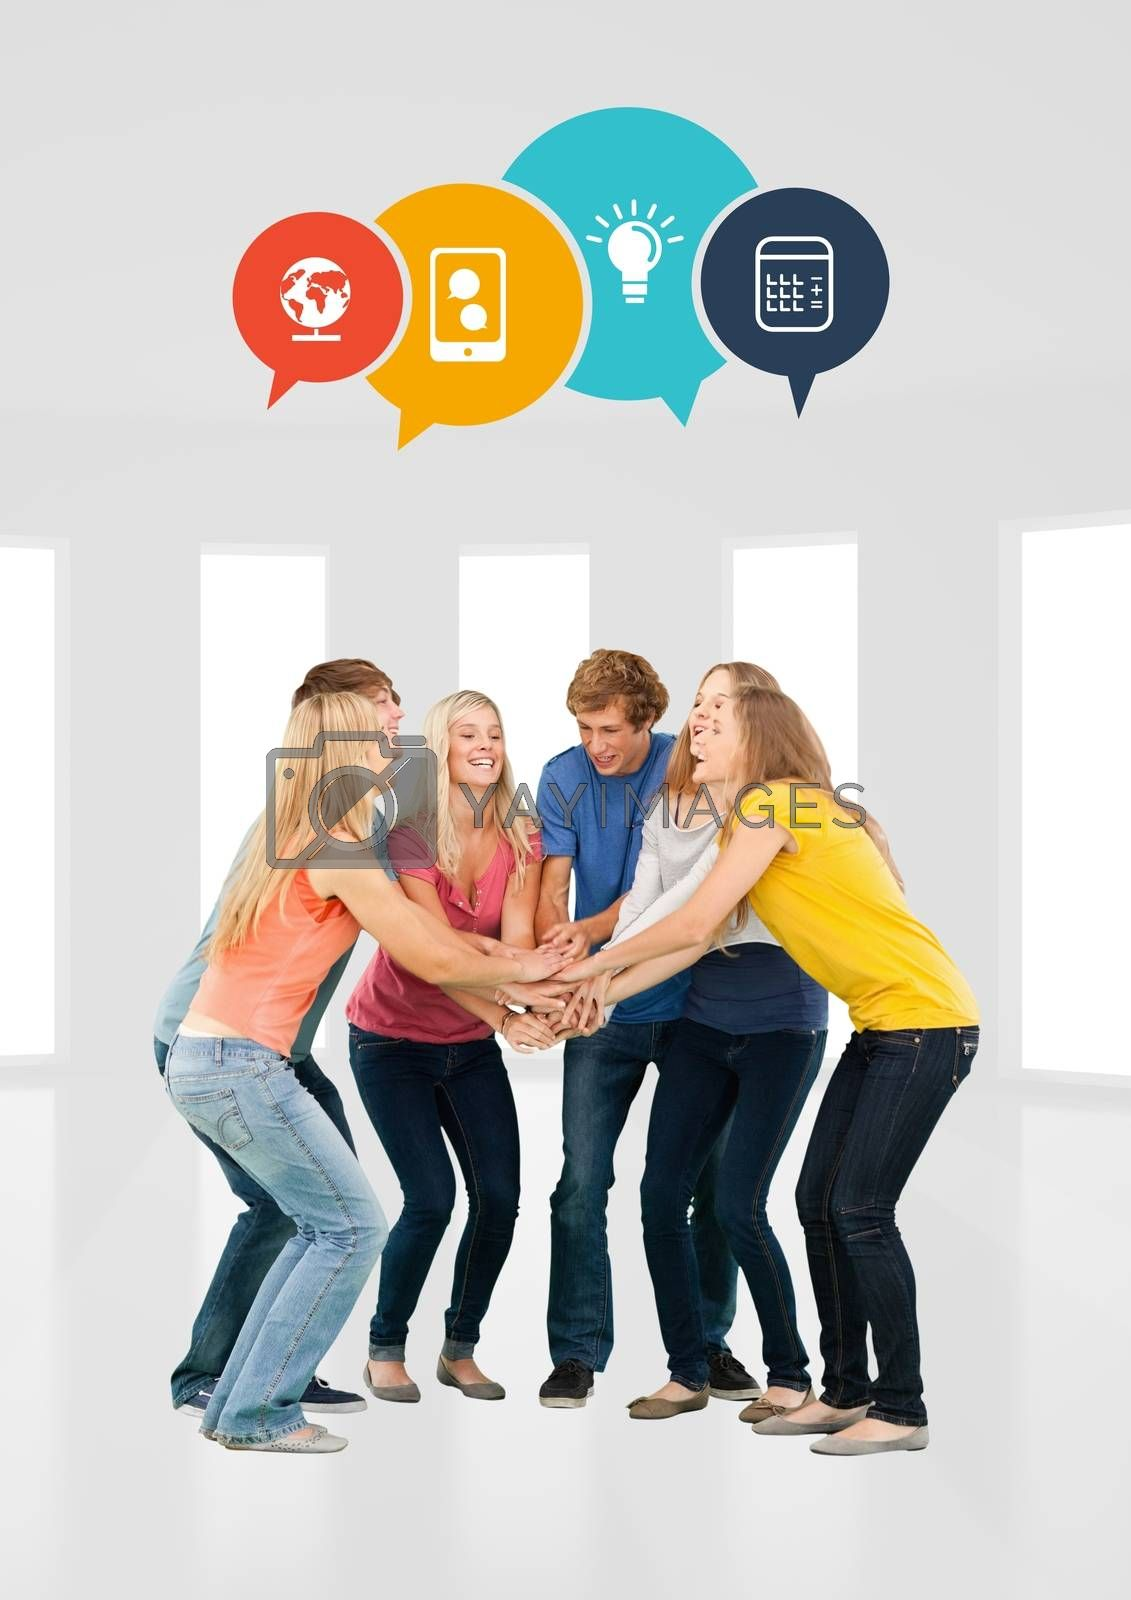 Digital Composite of Cheerful group of student in circle against white background